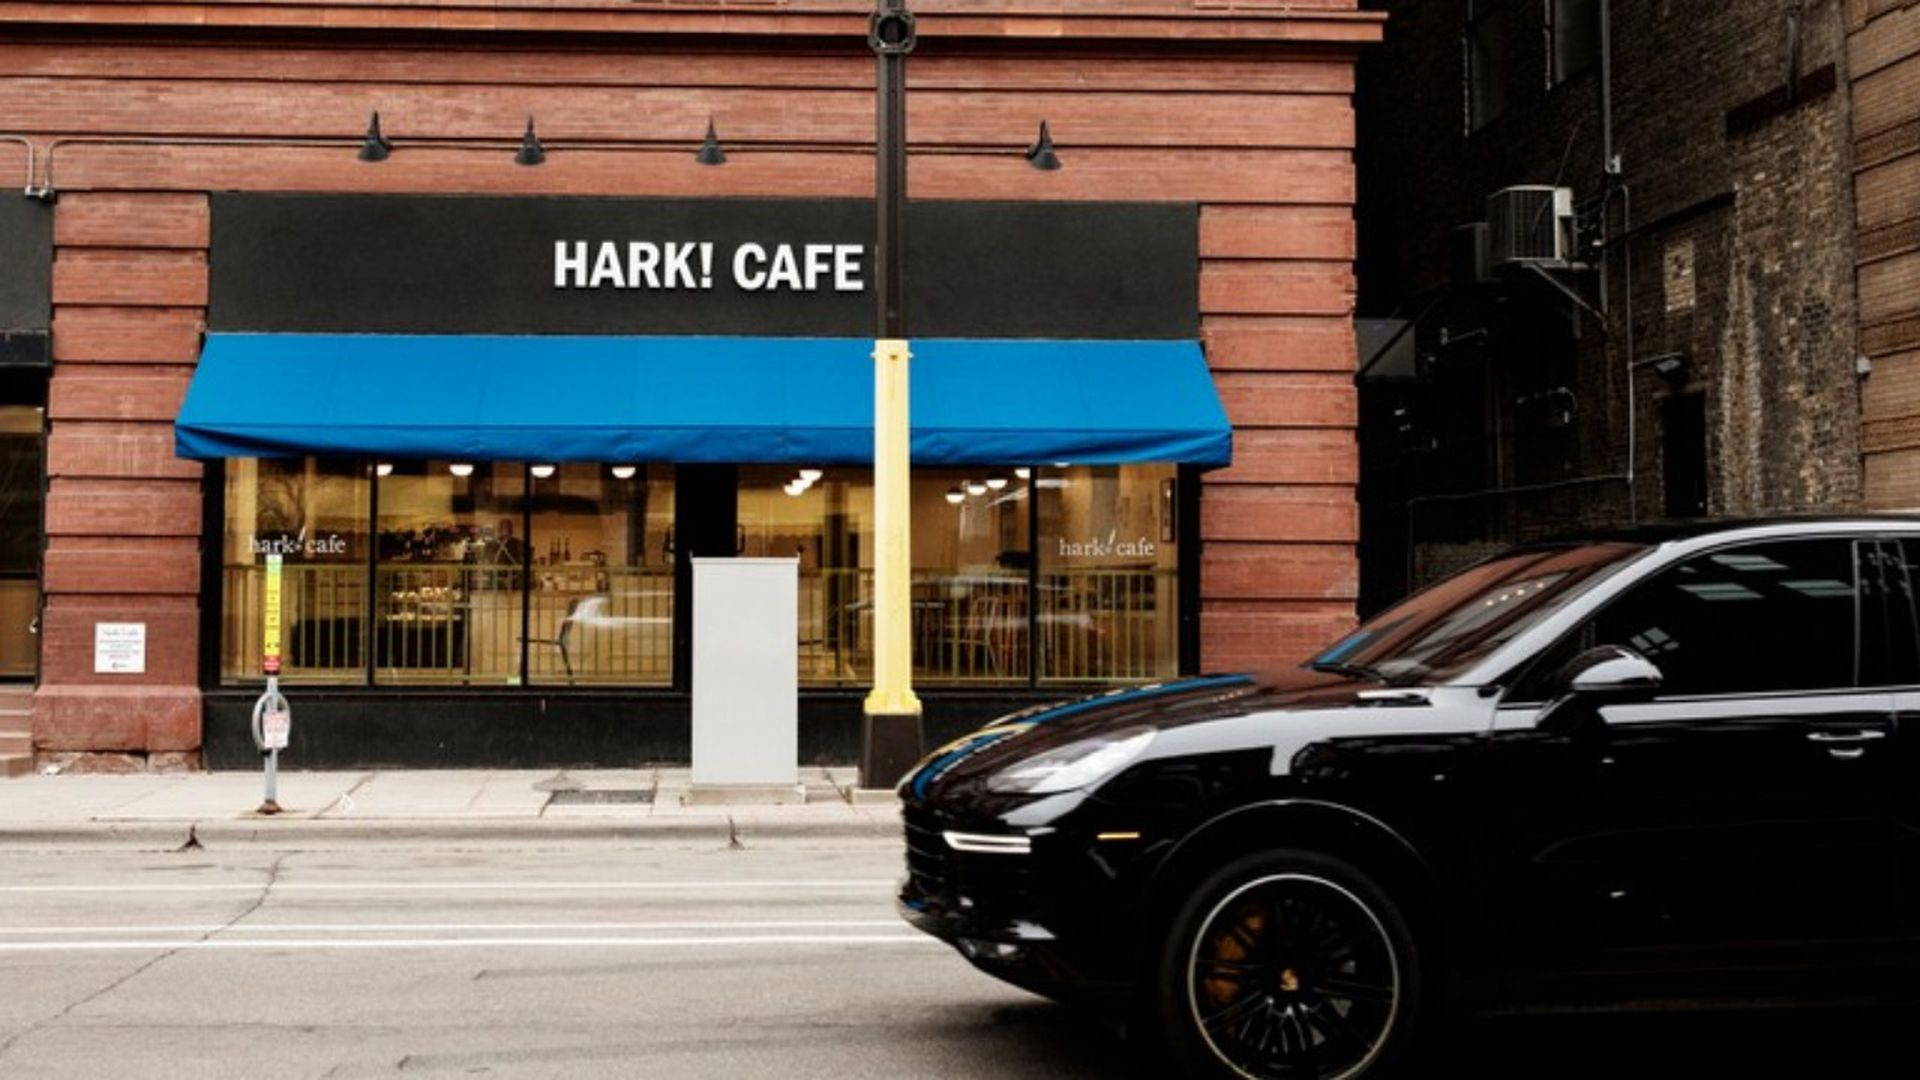 The exterior of Hark! Cafe in Minneapolis.